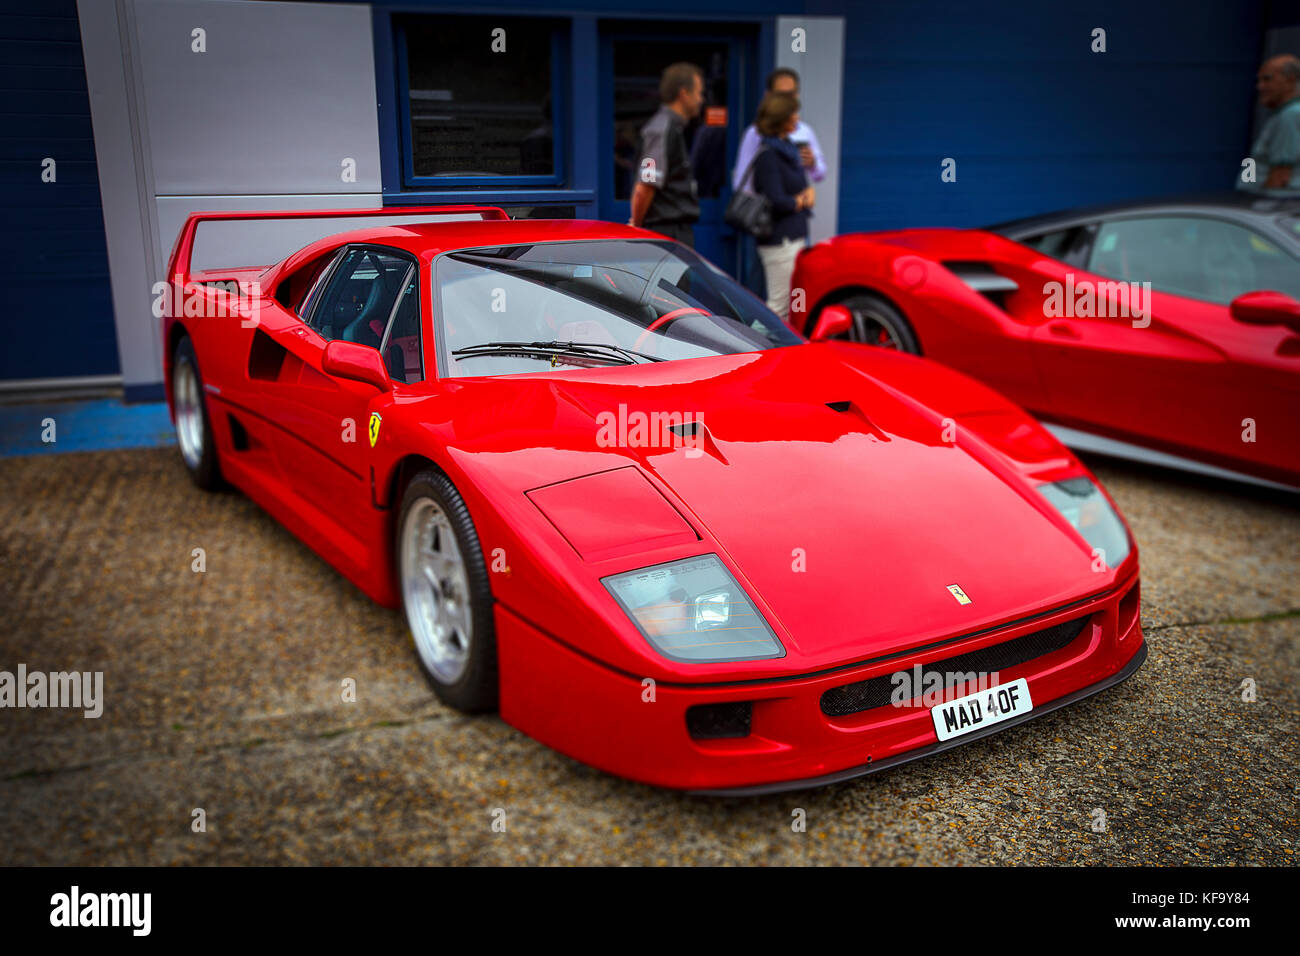 The Ferrari F40 Is A Mid Engine, Rear Wheel Drive, Two Door Coupé Sports Car [4] Built From 1987 To 1992, With The LM And GTE Race Car